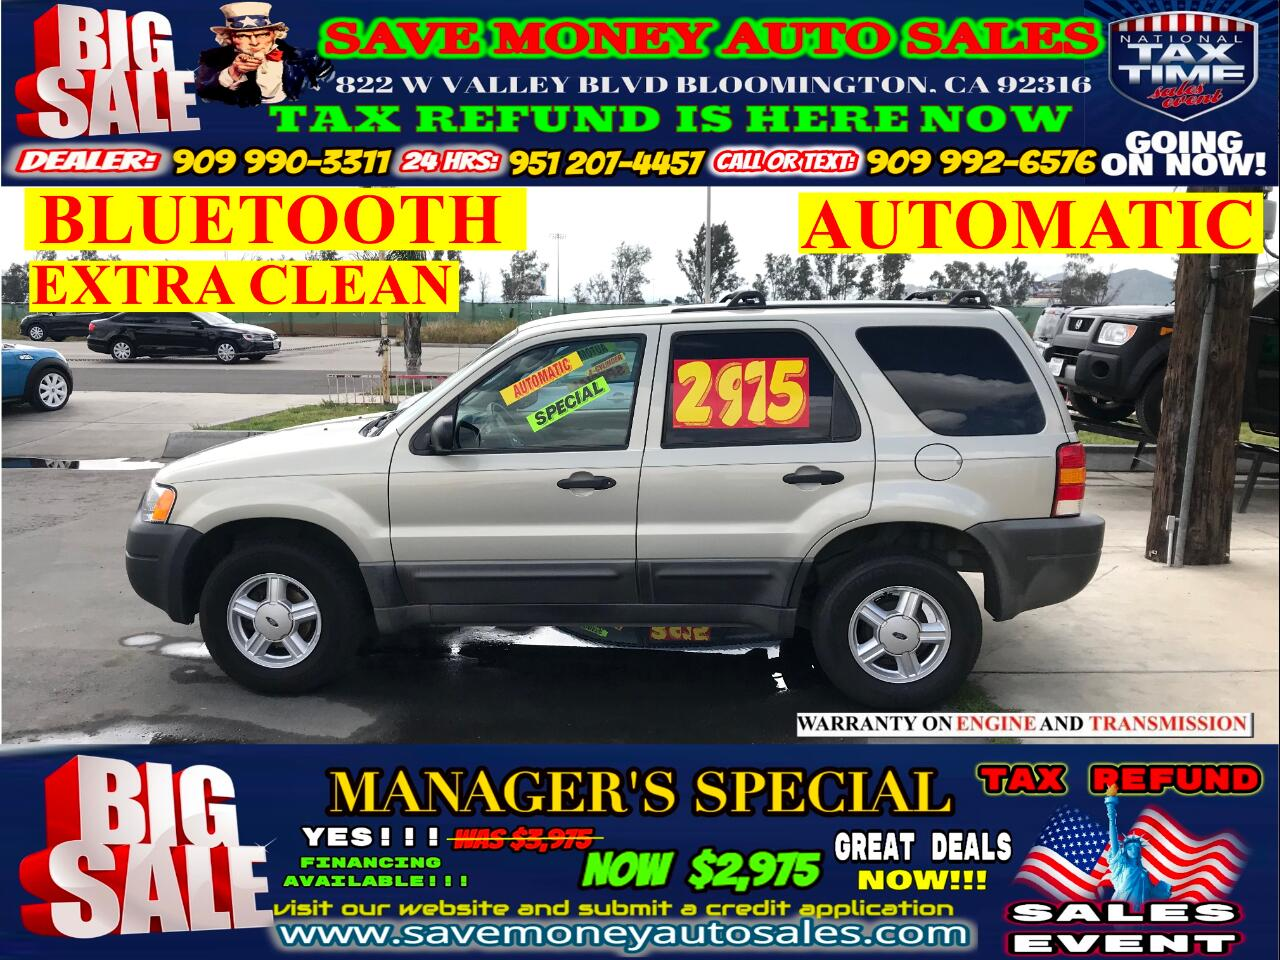 2003 Ford Escape XLS> AUTOMATIC> BLUETOOTH> EXTRA CLEAN